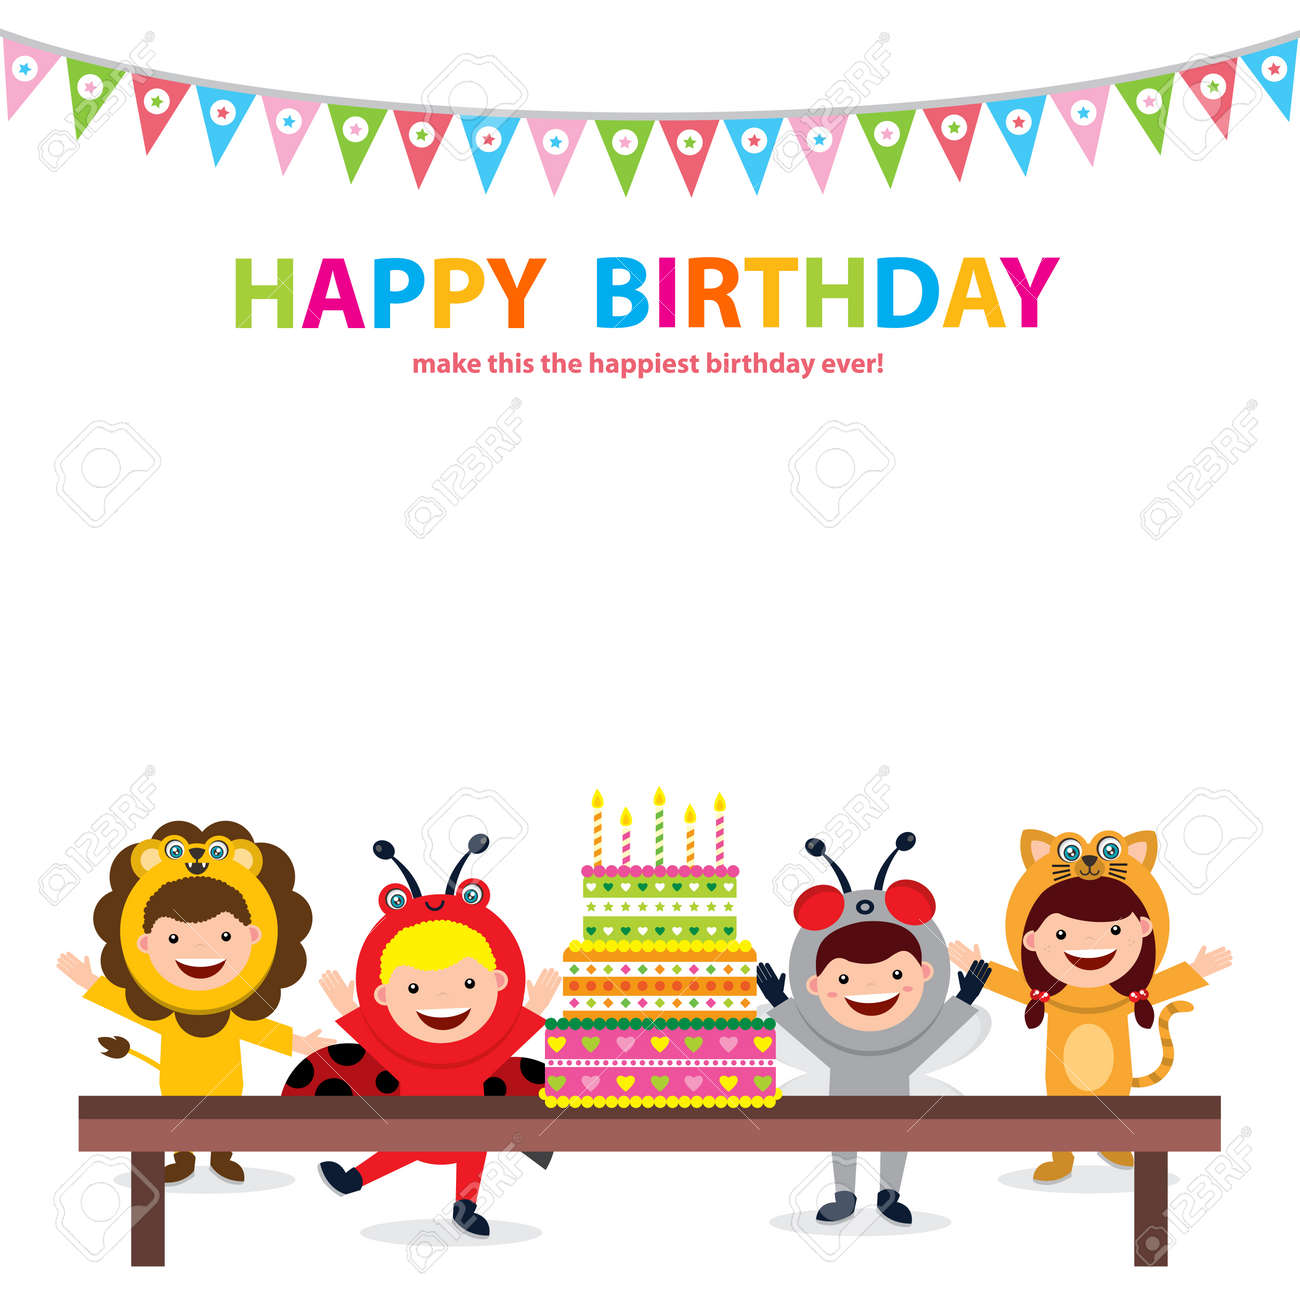 Cool Birthday Card Template With Kids In Animal Costume Royalty Free Funny Birthday Cards Online Fluifree Goldxyz